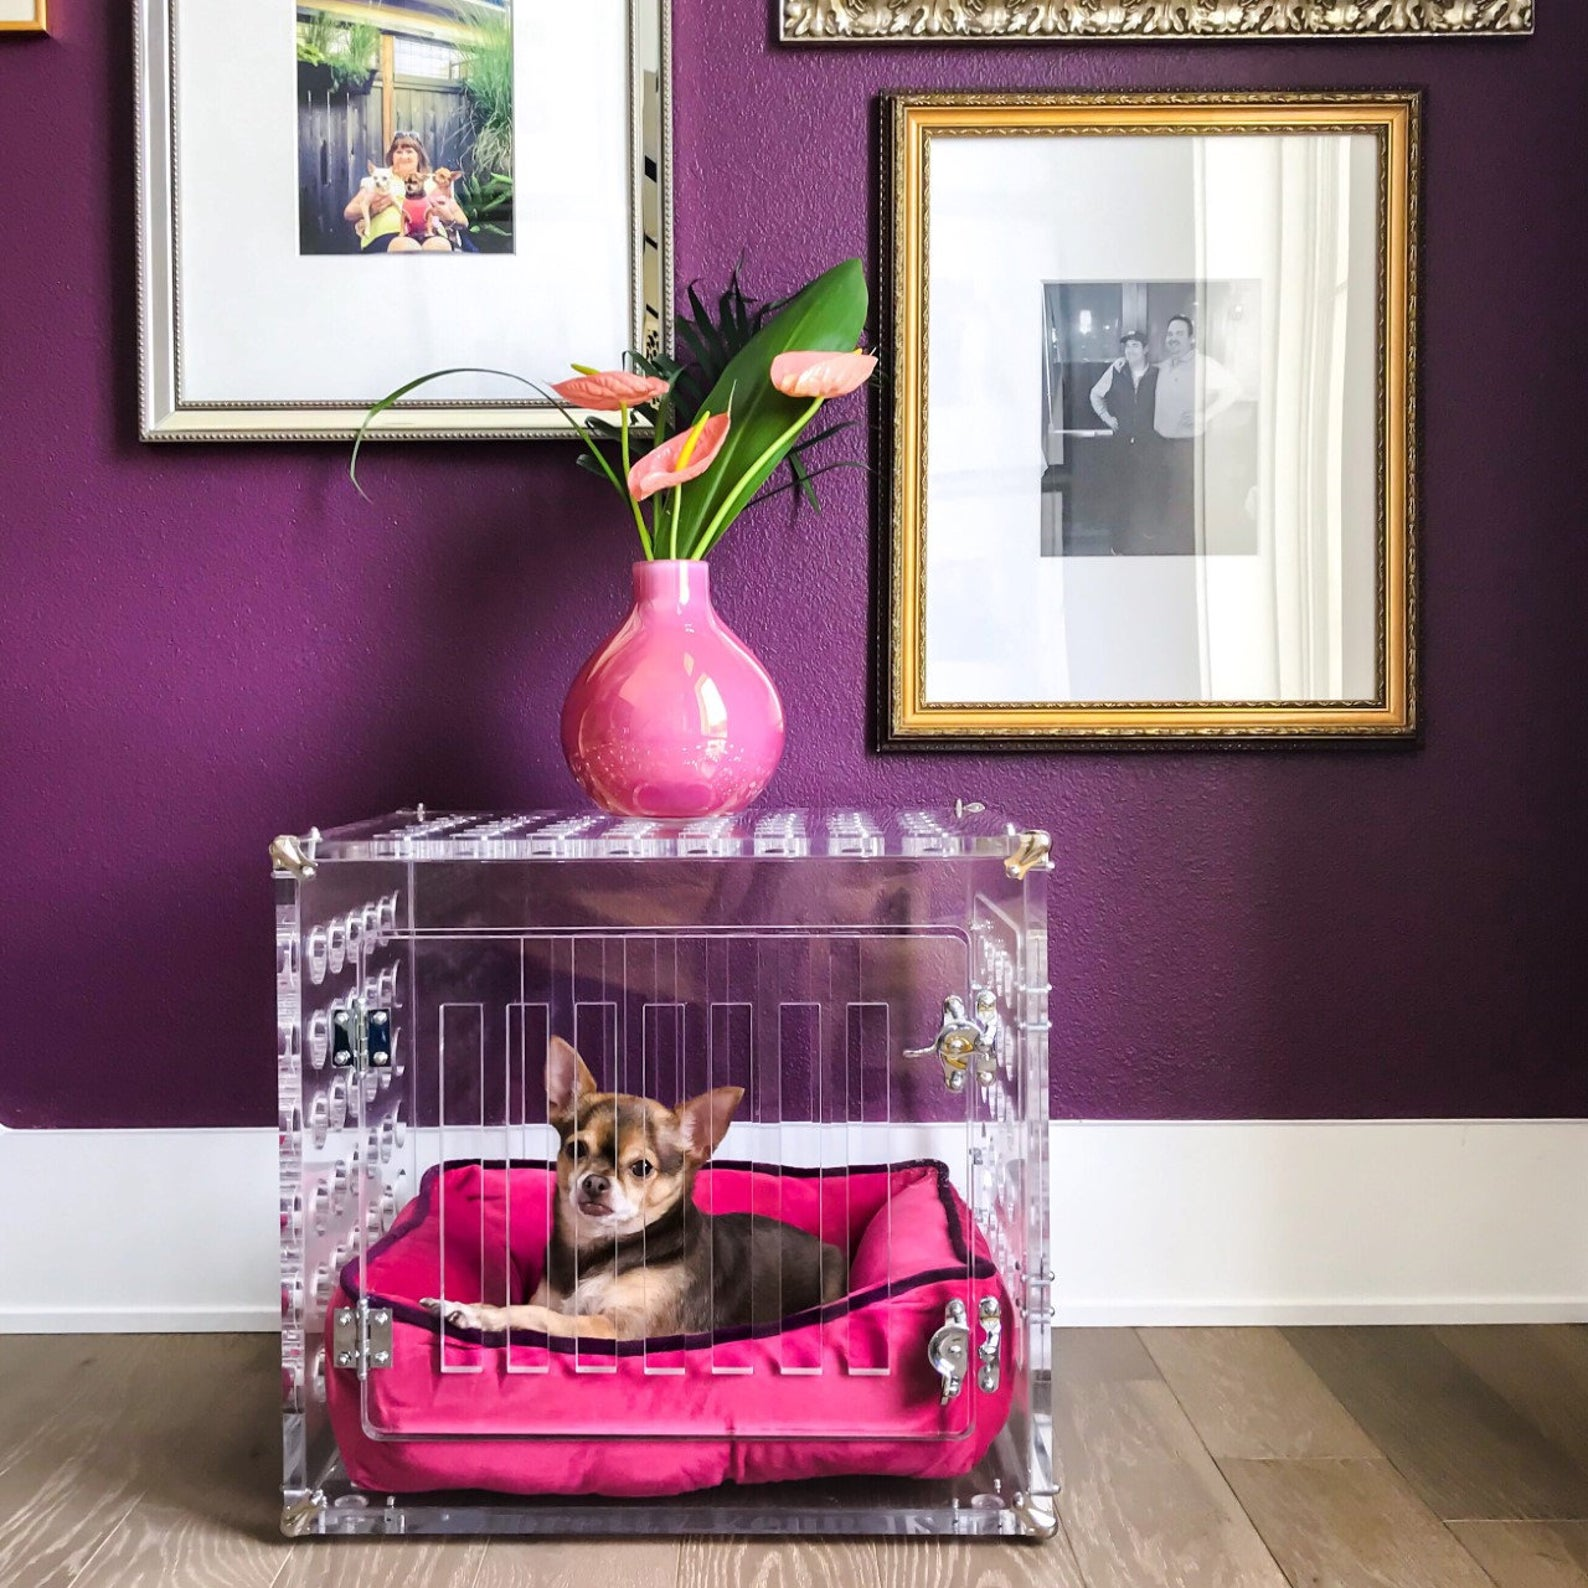 Petite Pretty Kennel for Dogs under 10 lbs via Pretty Kennels (Etsy)